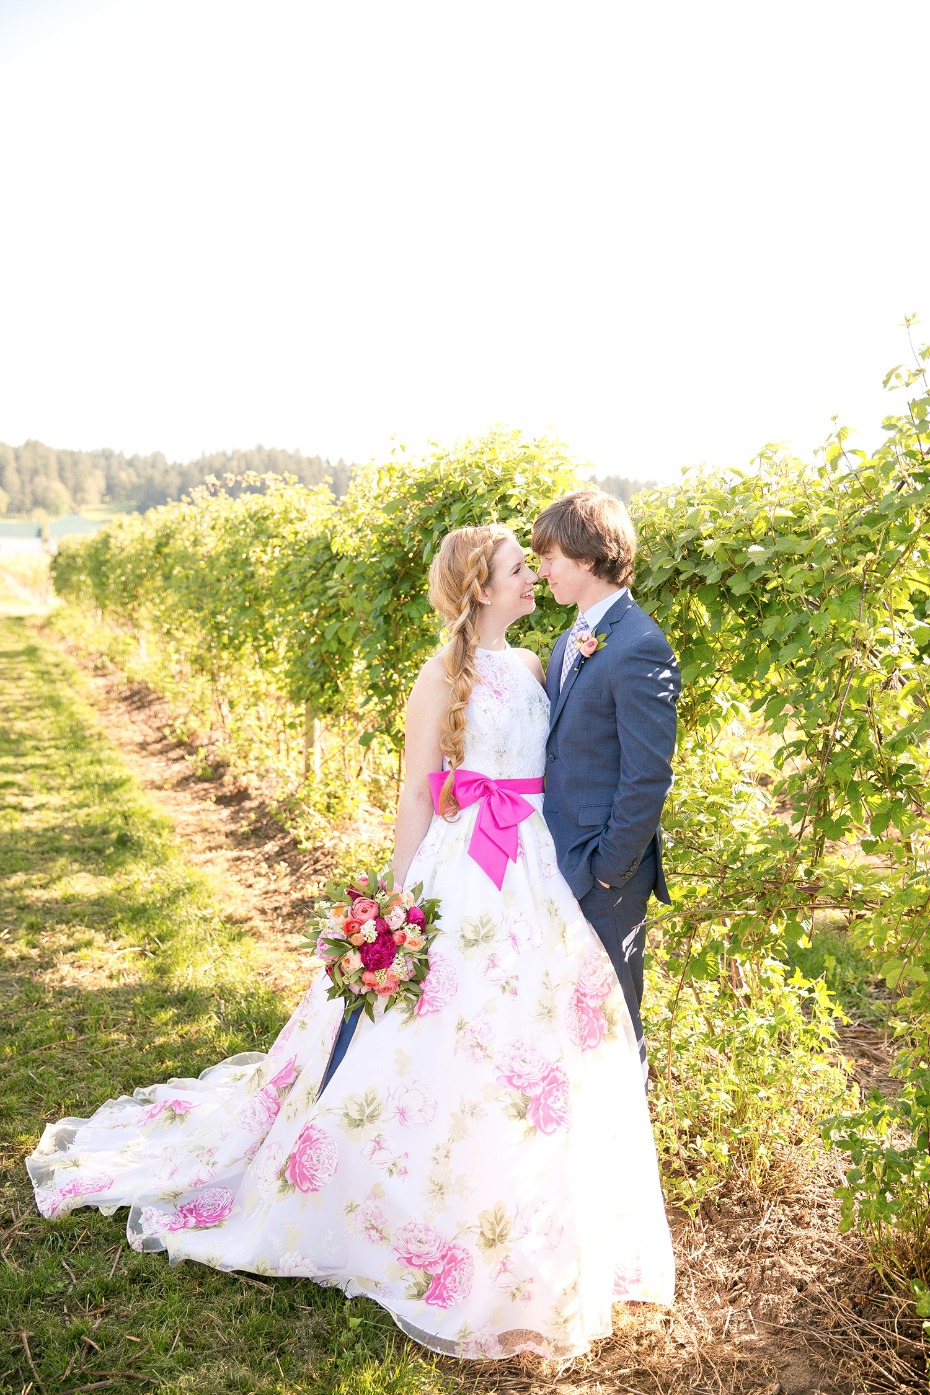 Colorful preppy chic wedding ideas